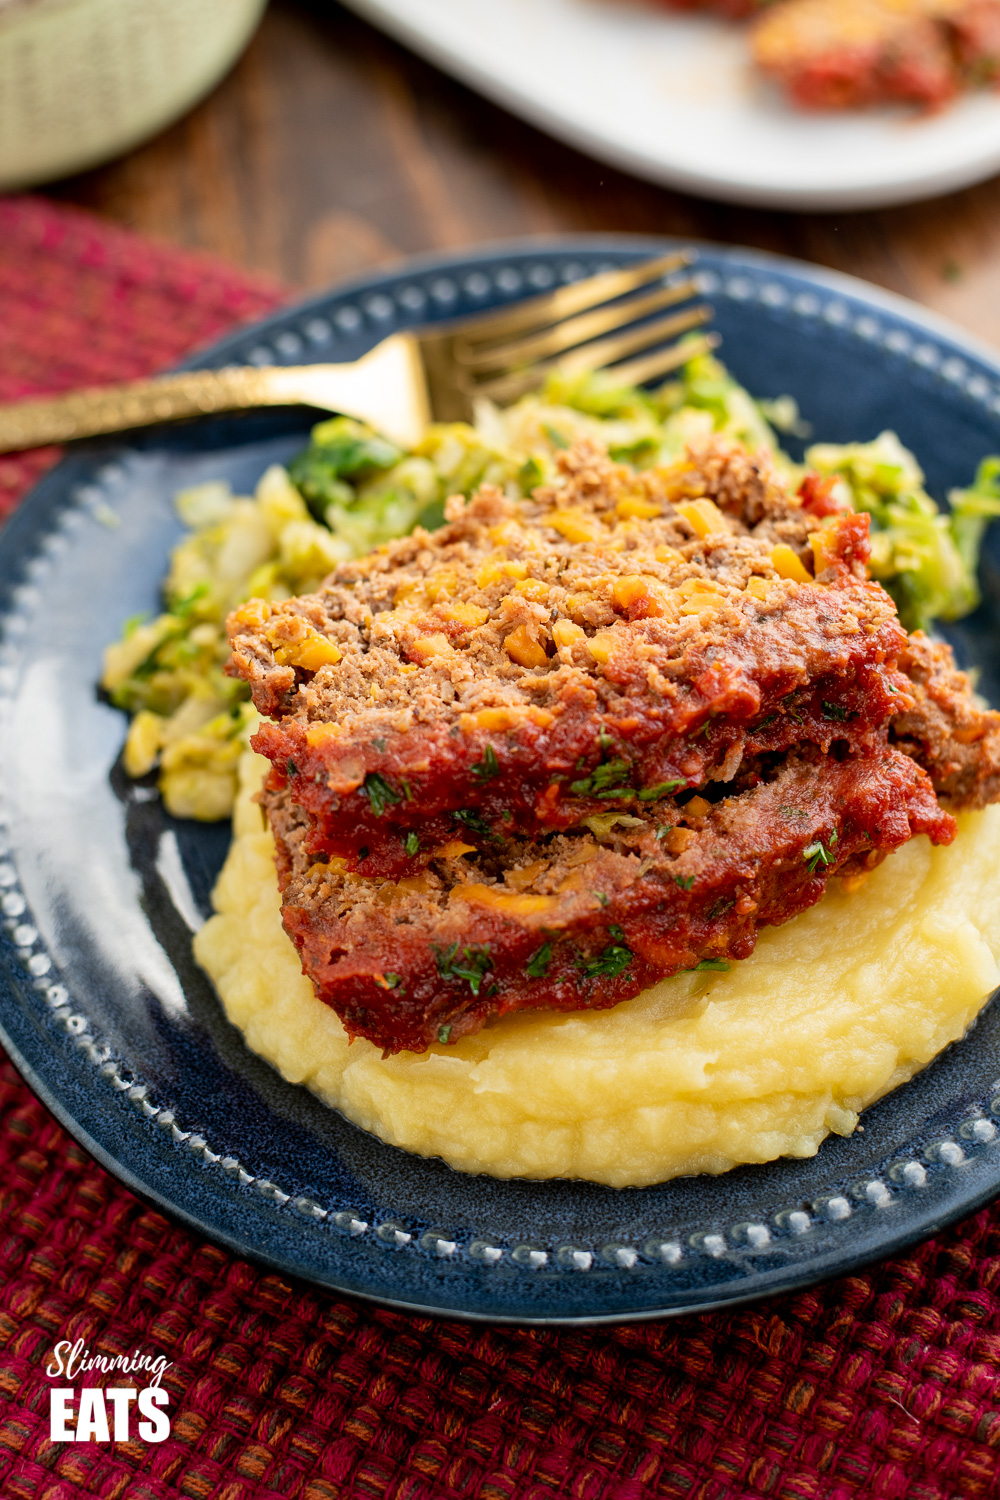 beef and sweet potato meatloaf over mashed potatoes on a navy blue plate.